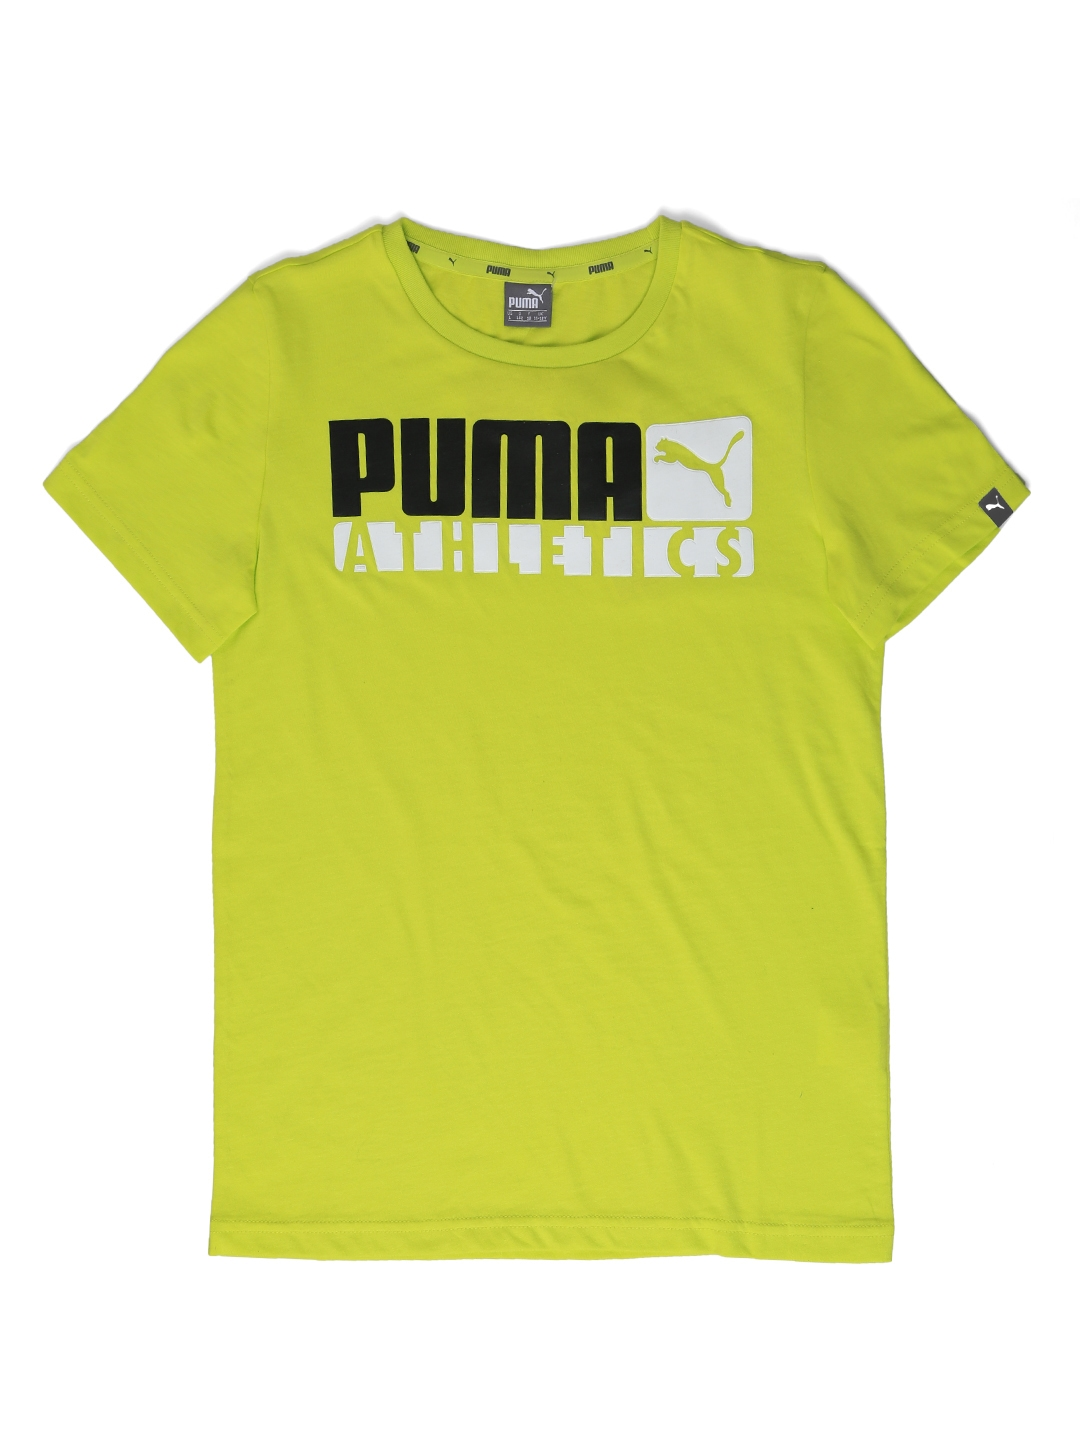 323bcd84c13b Buy Puma Boys Lime Green Printed Round Neck STYLE Graphic T Shirt ...